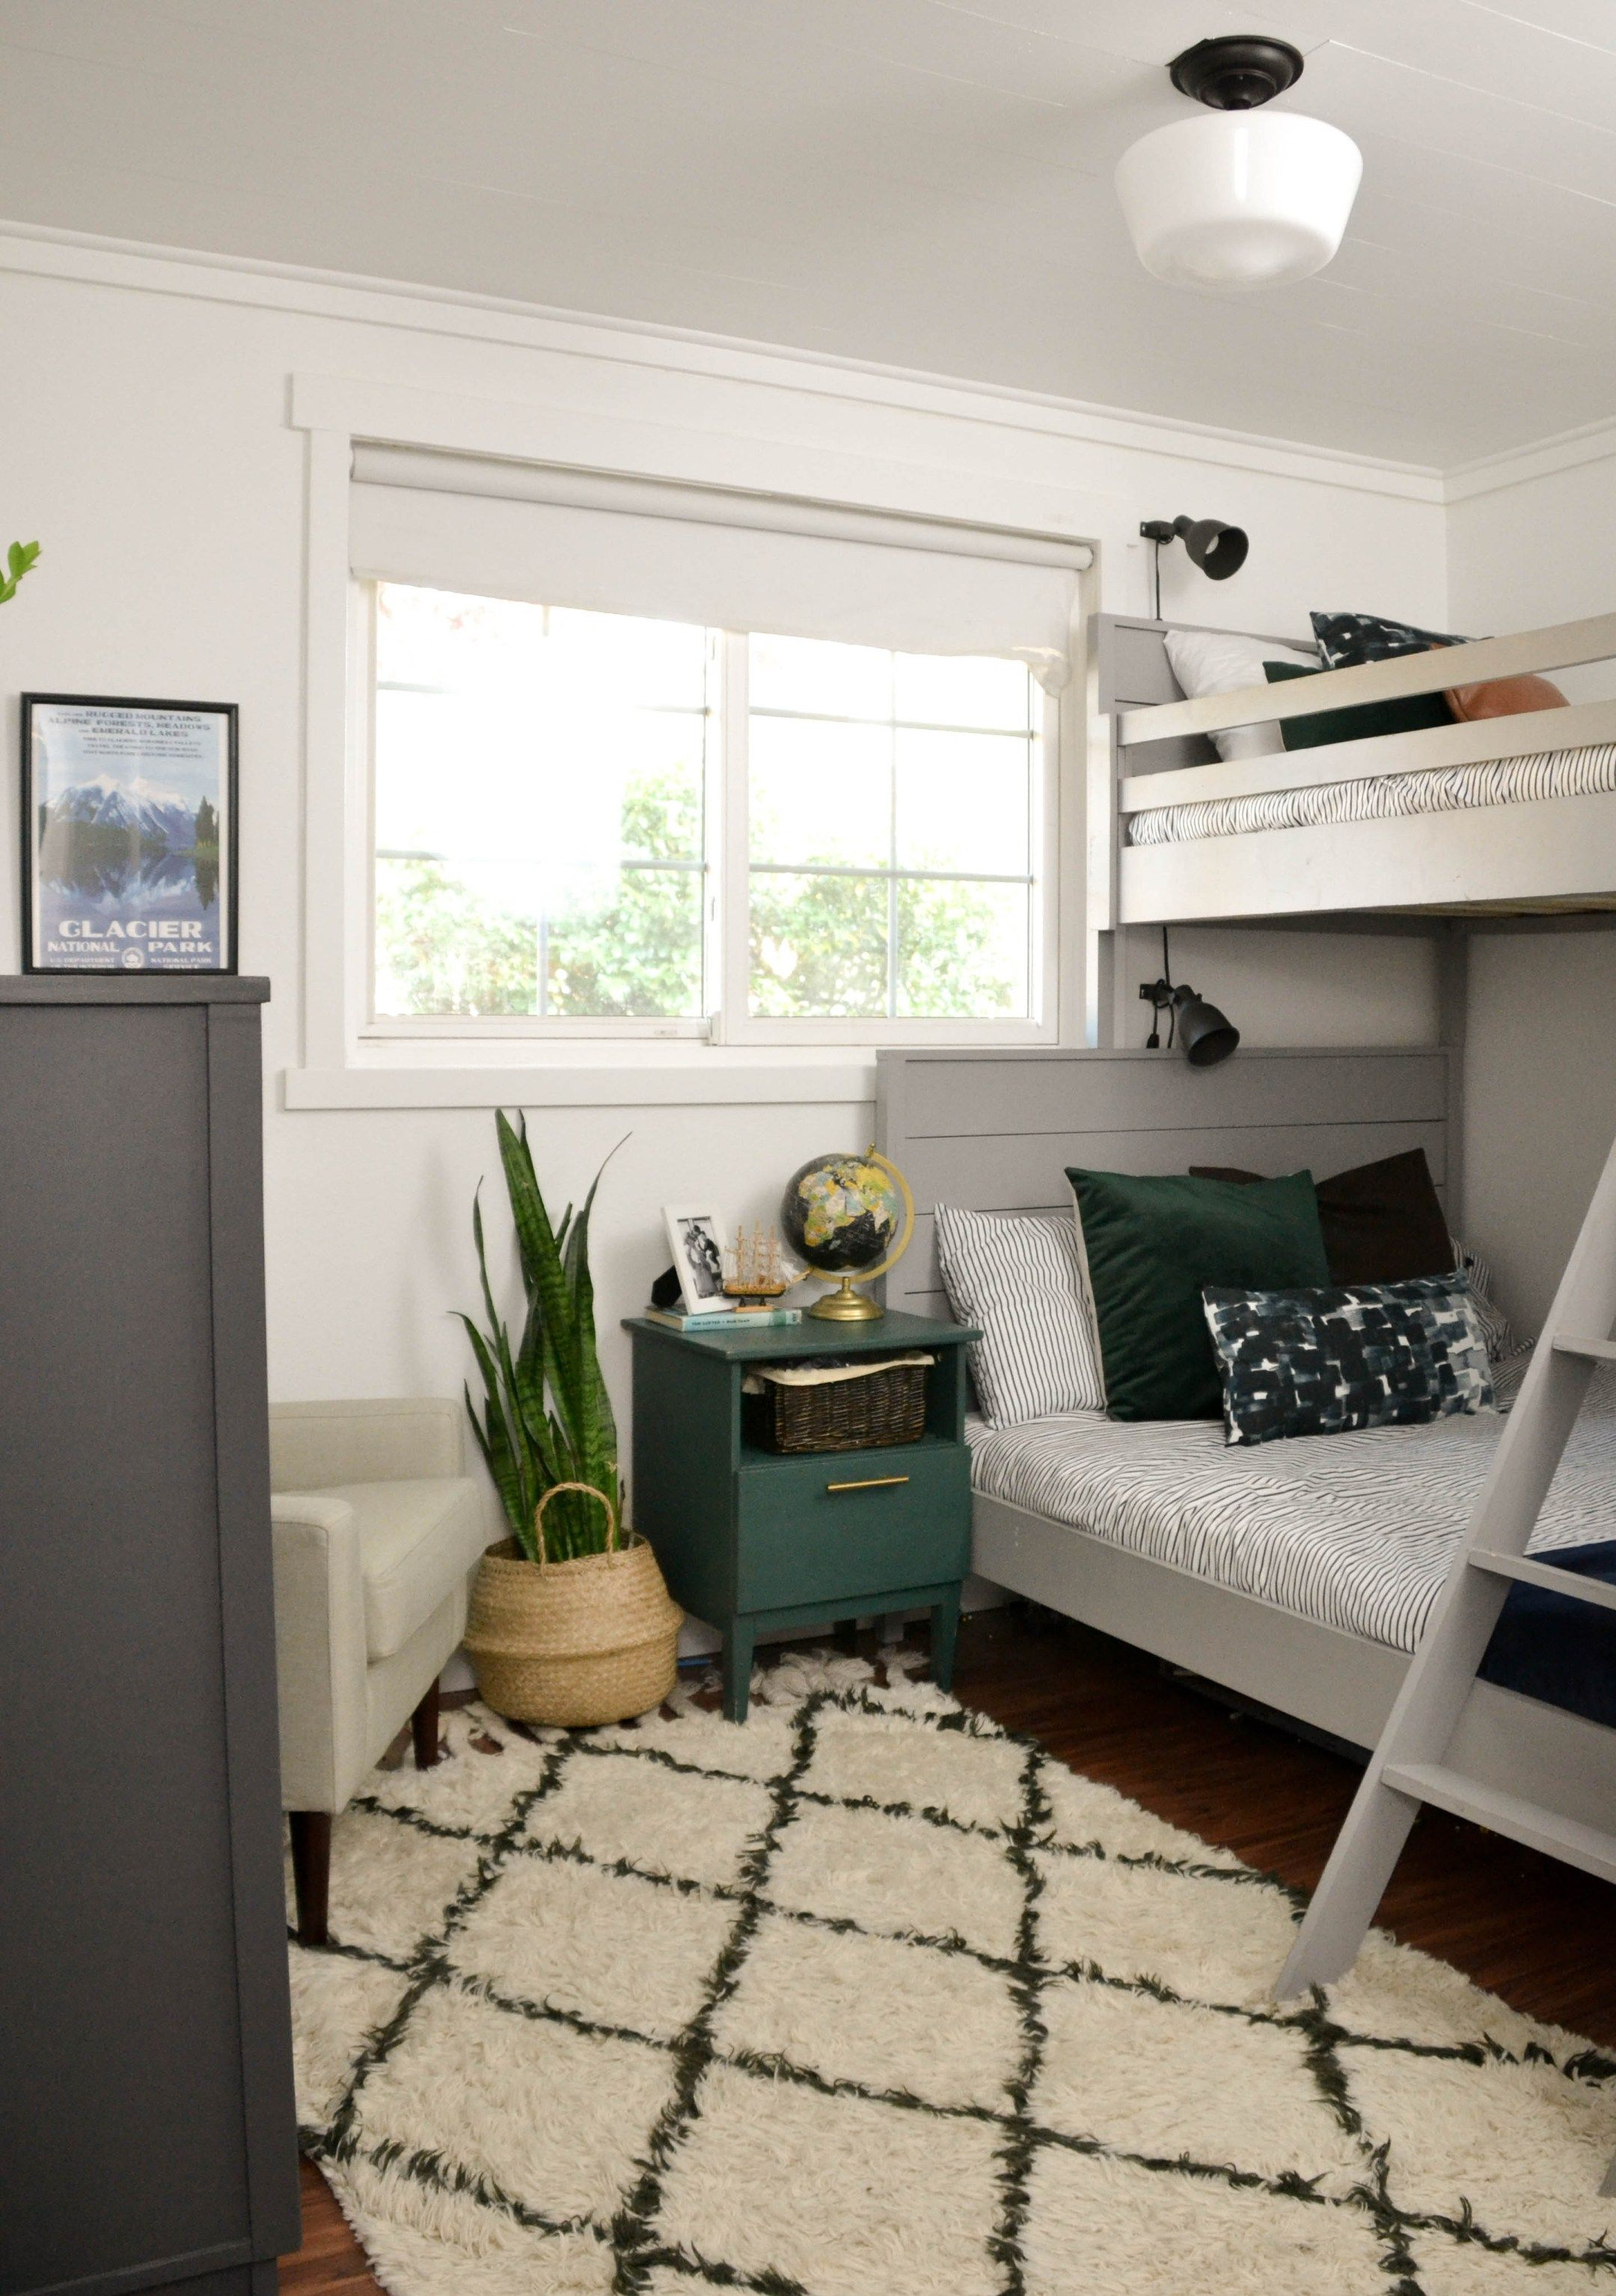 Small Shared Boys Room Diy Twin Over Full Bunk Bed Small Boys Room Twin Boys Room Cool Boys Room